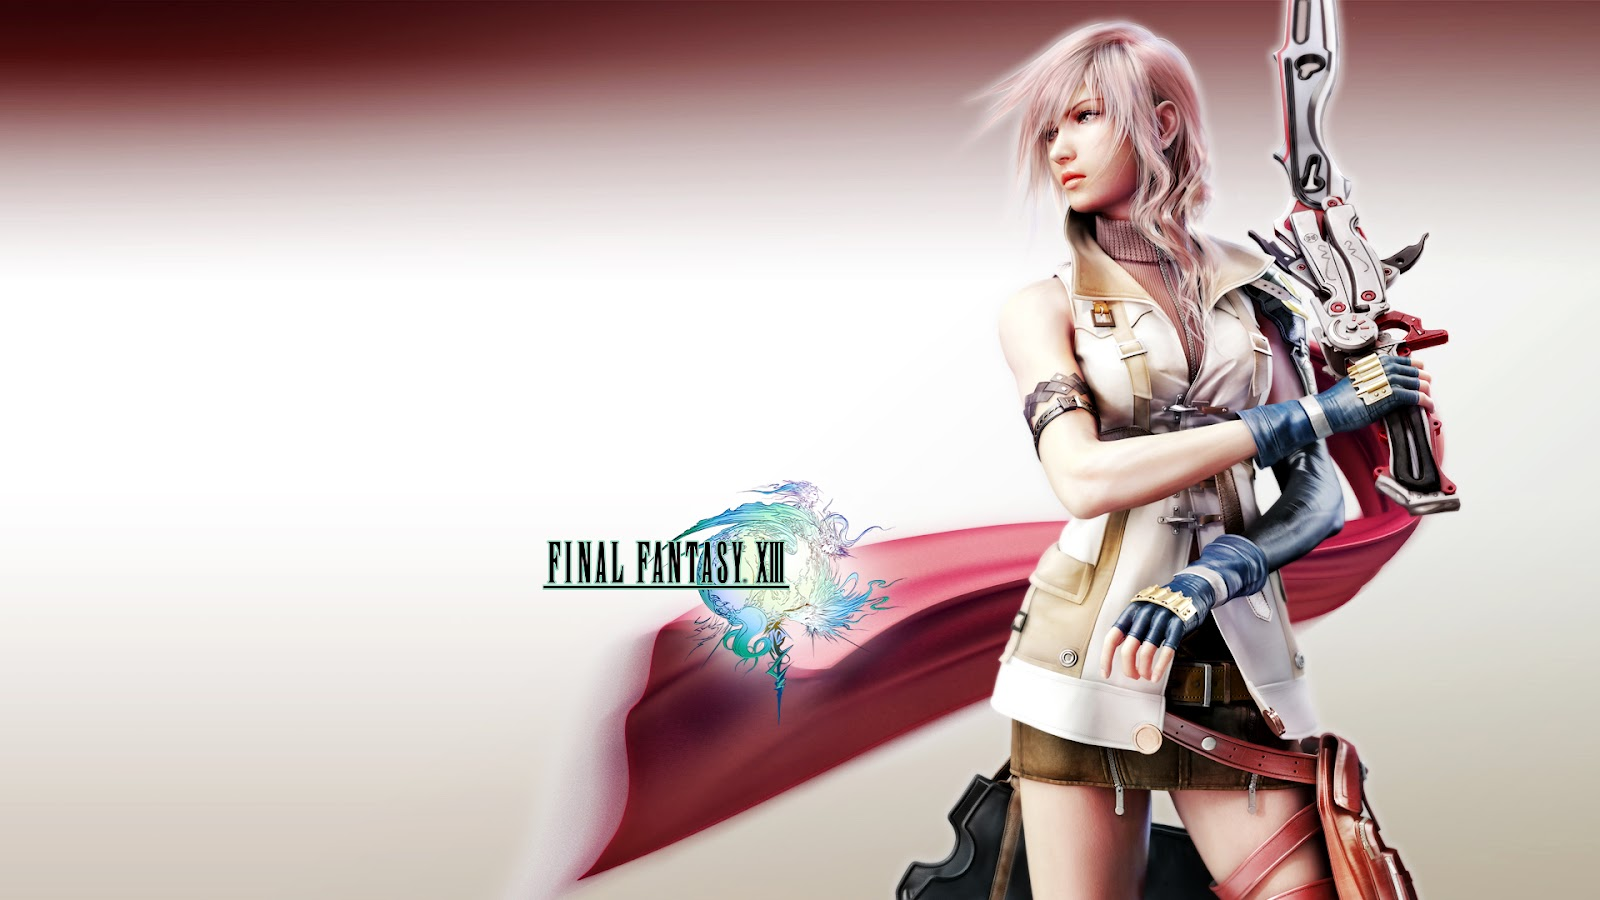 final fantasy wallpeper hd Page 7 1600x900